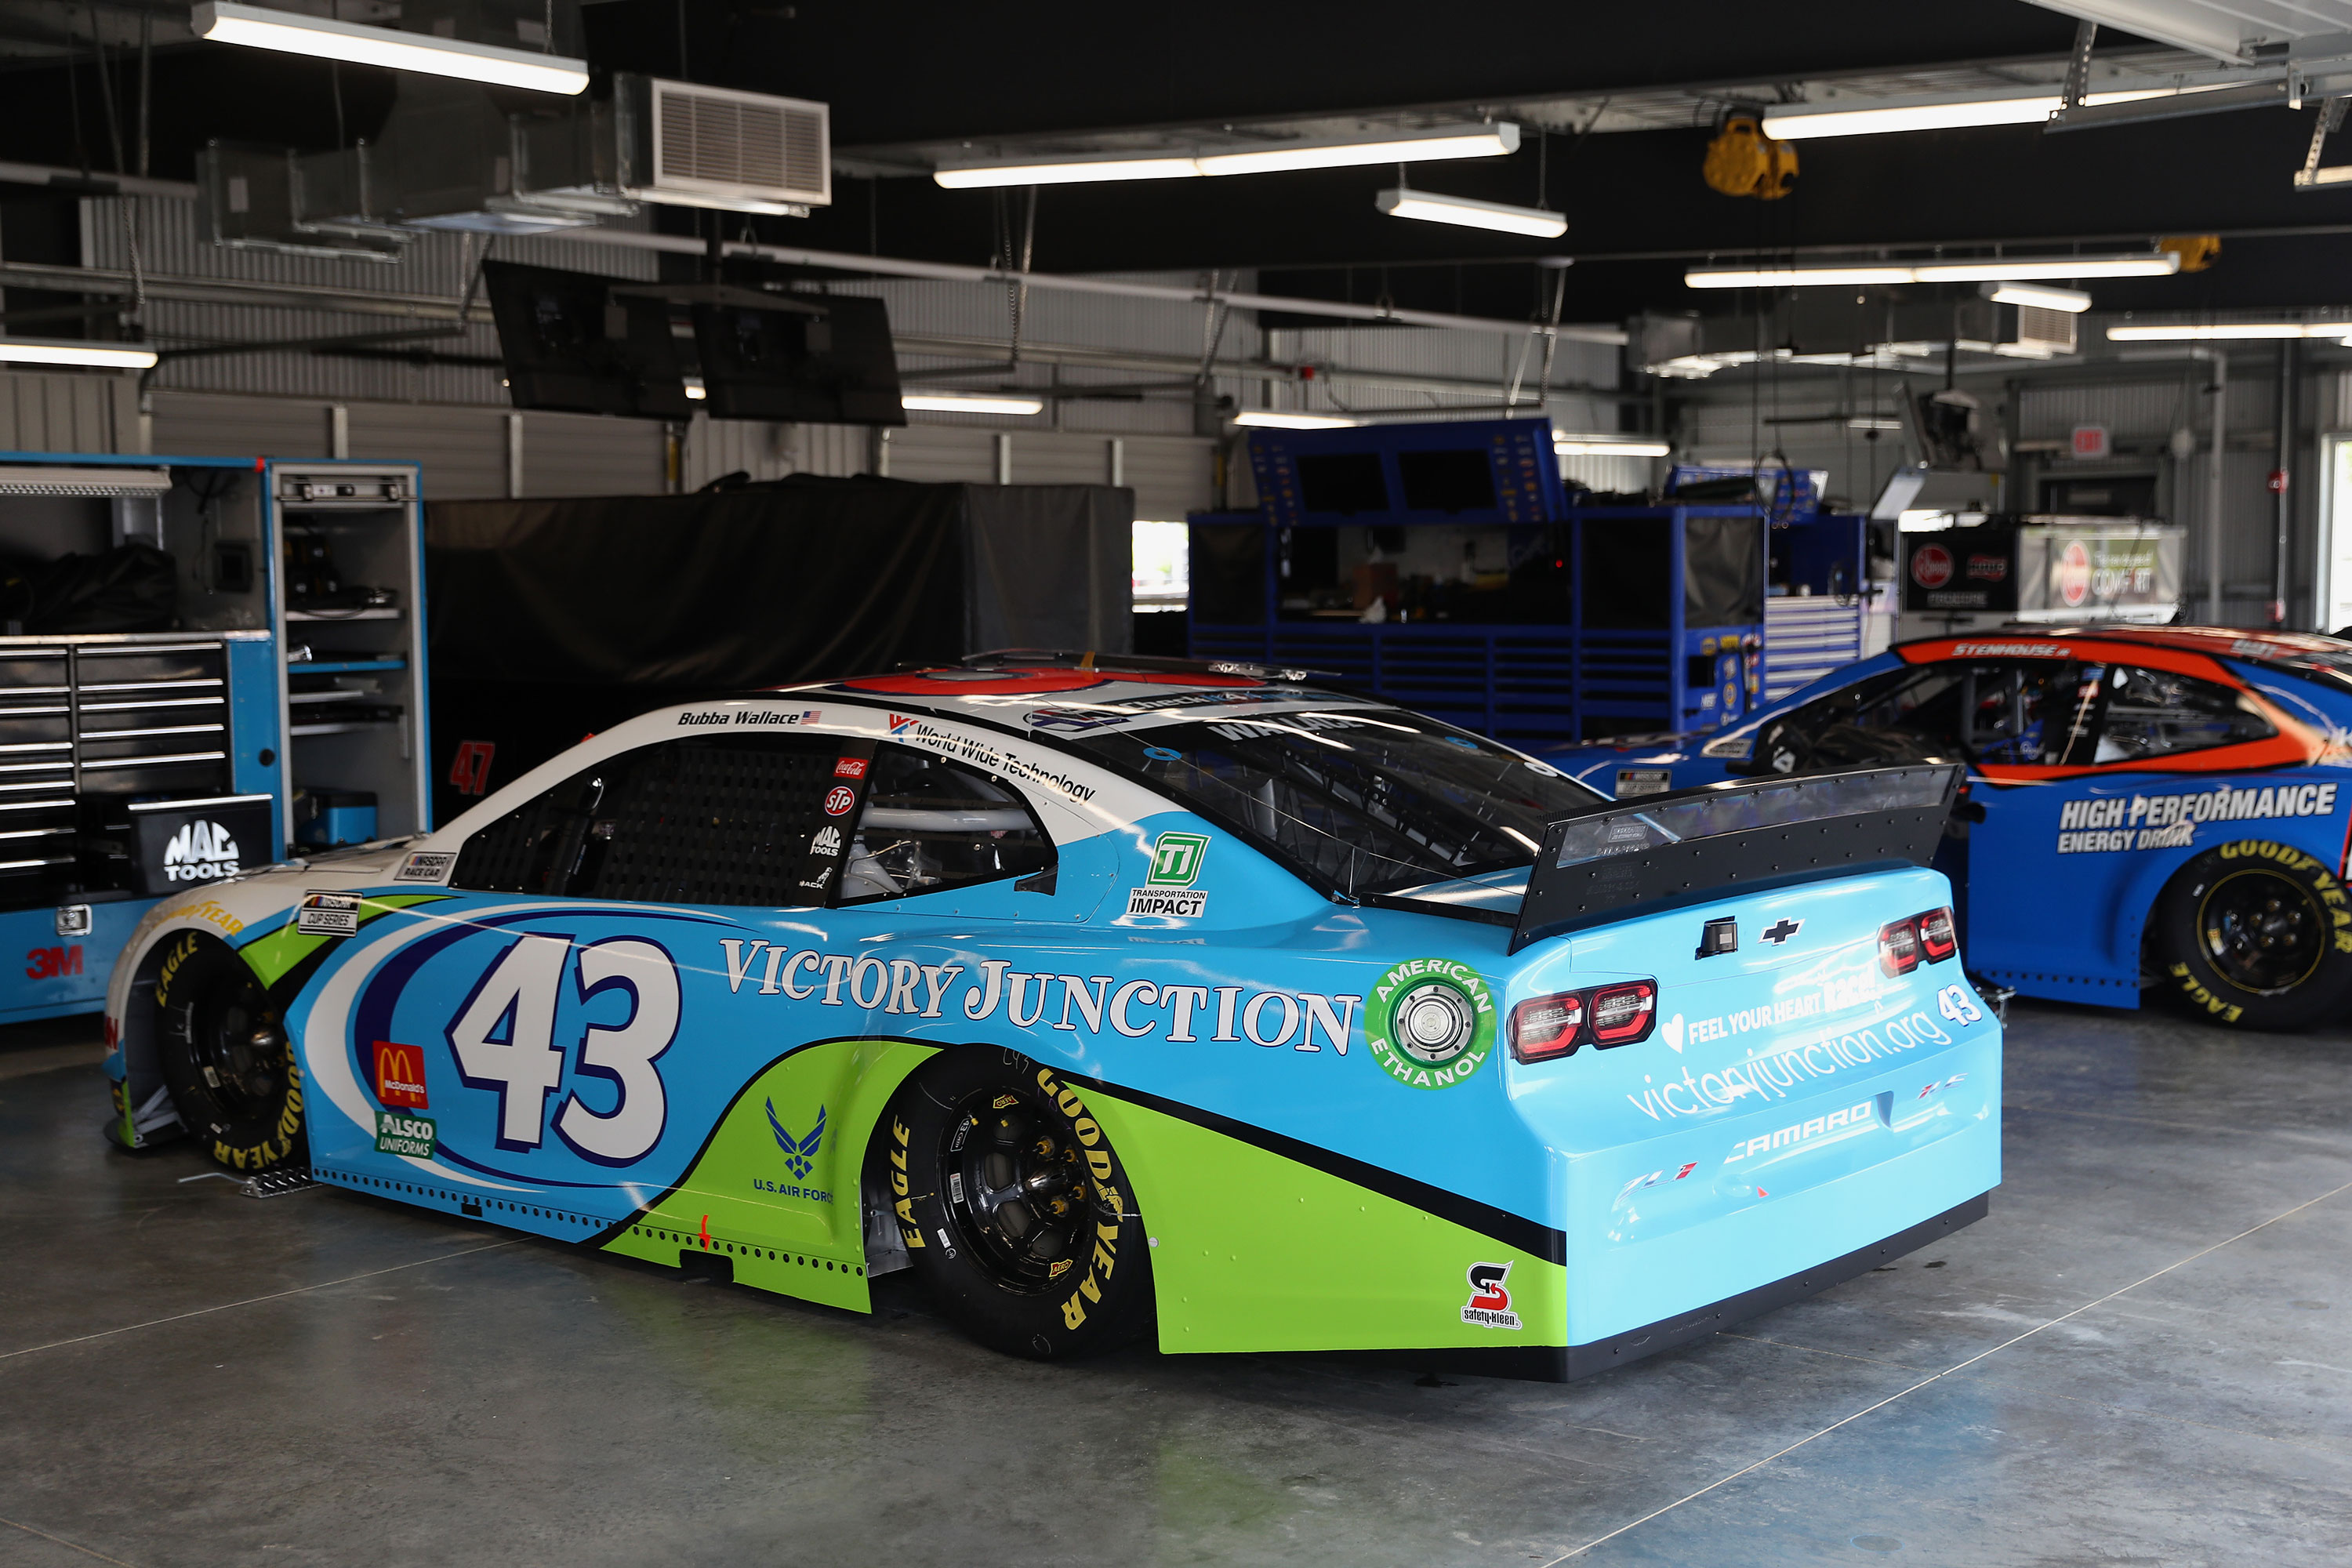 The #43 Victory Junction Chevrolet, driven by Bubba Wallace, sits in the garage area prior to the NASCAR Cup Series GEICO 500 at Talladega Superspeedway on June 22 in Talladega, Alabama.